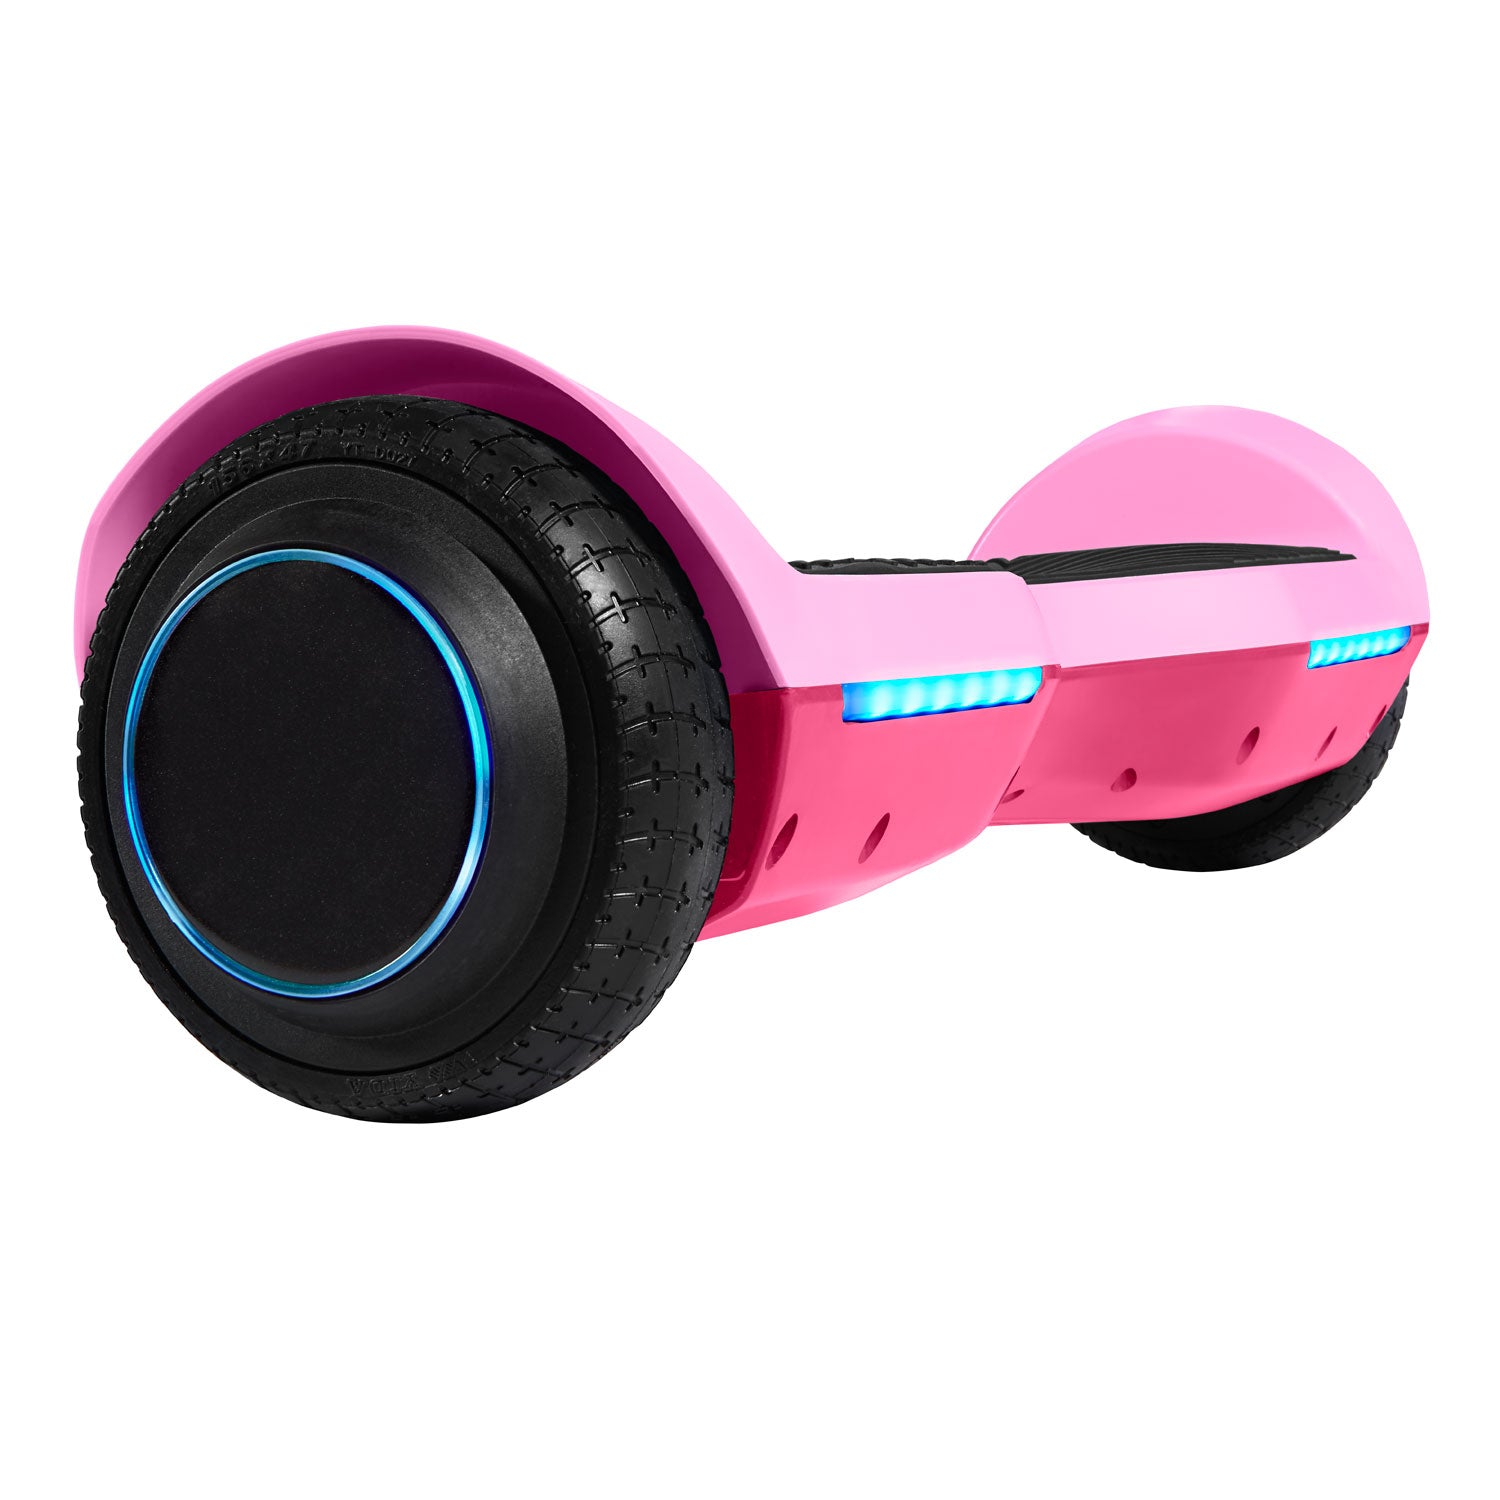 pink Main image srx bluetooth hoverboard